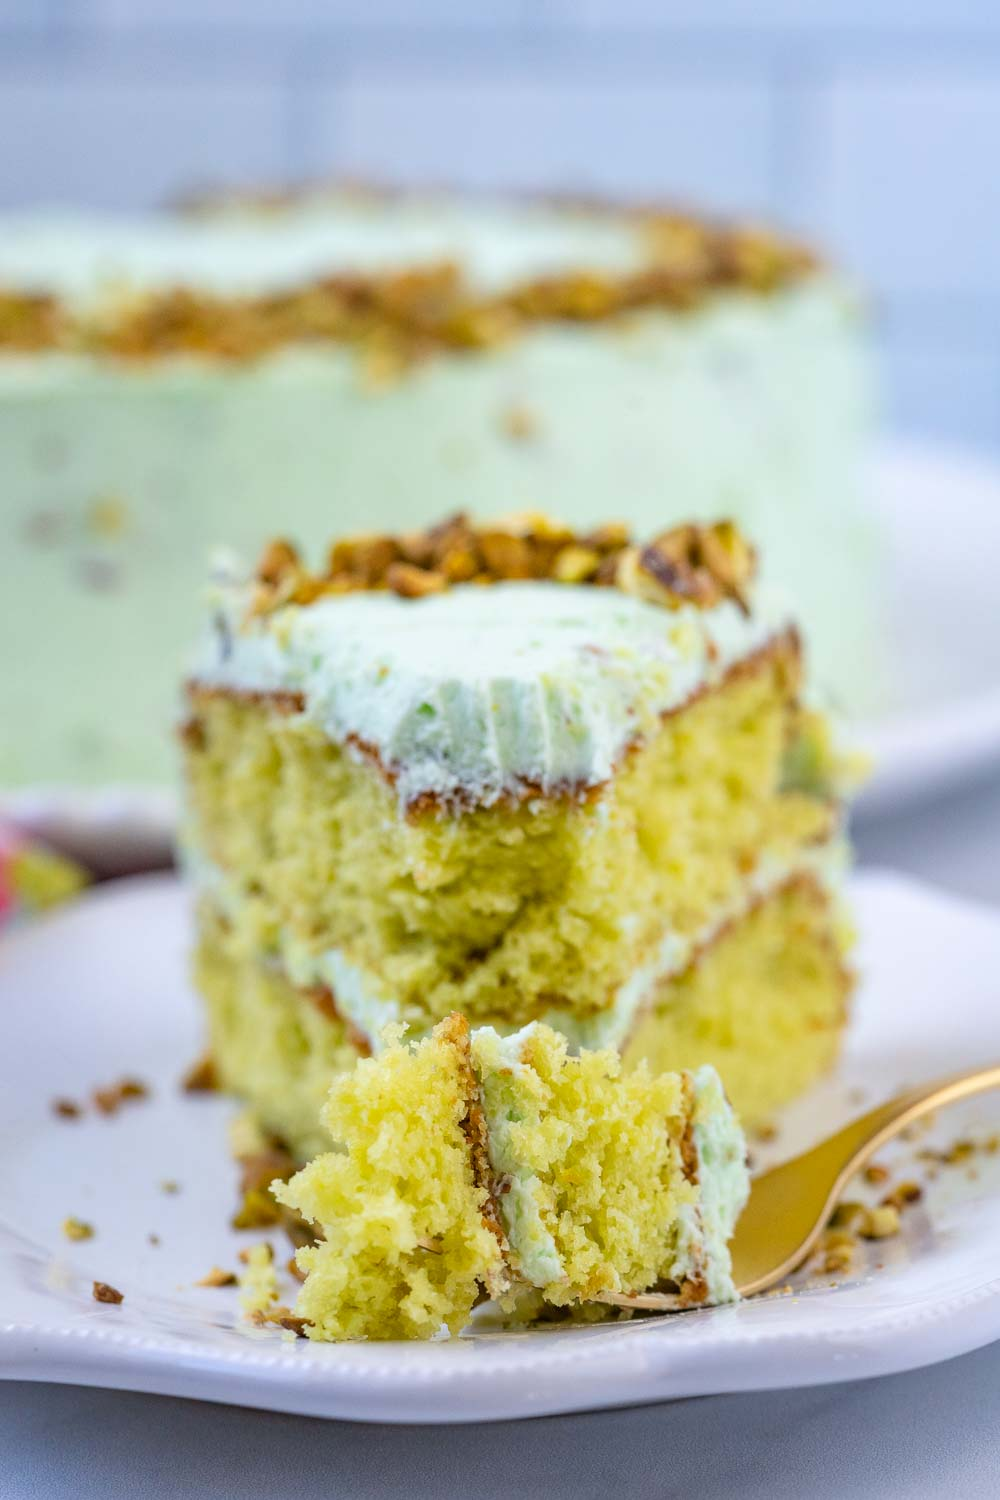 A for digging into a slice of pistachio cake.